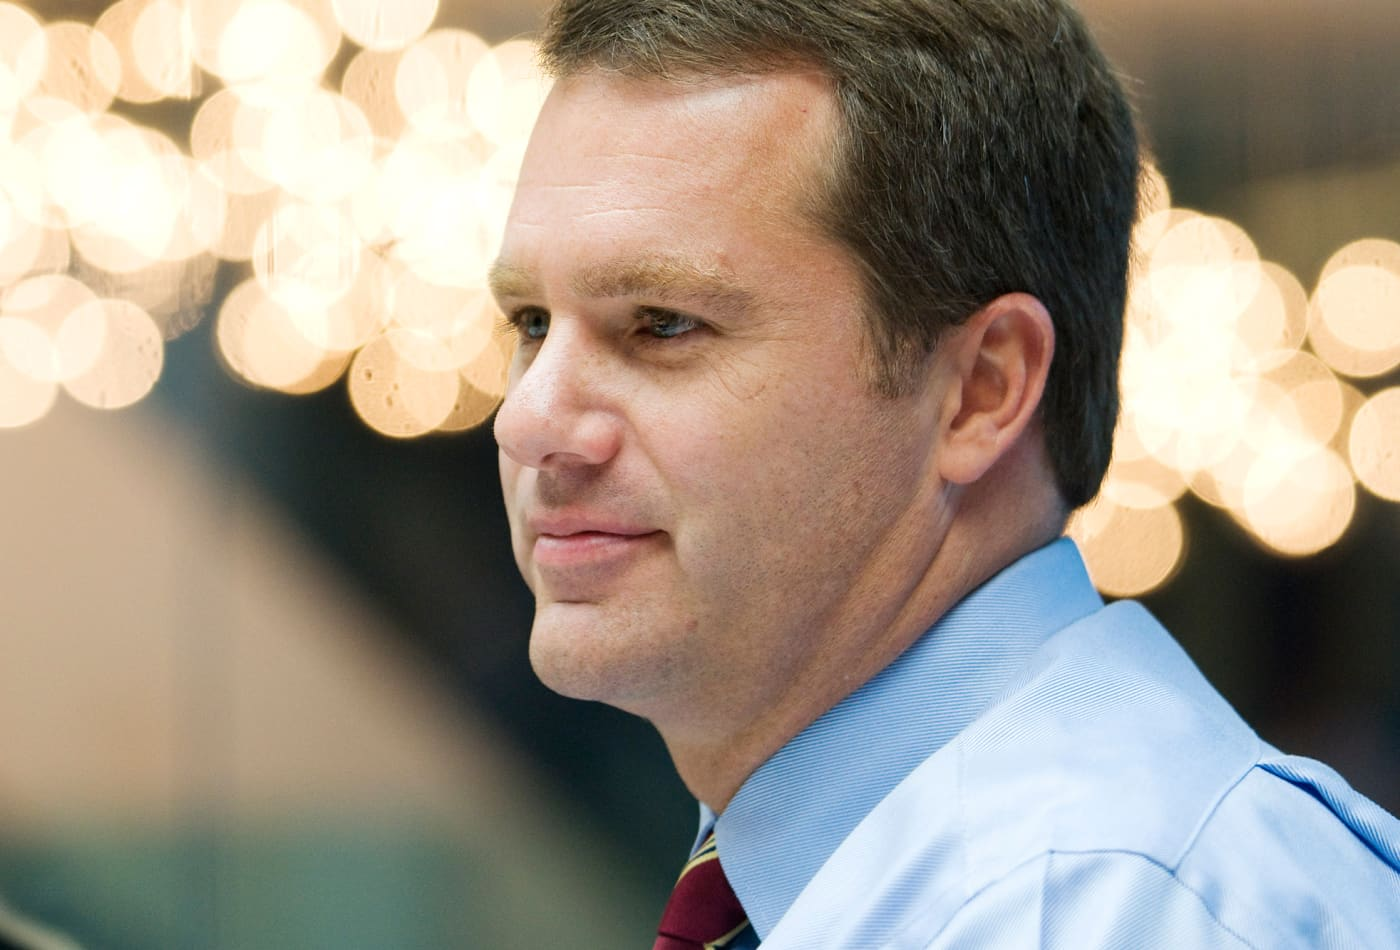 Walmart CEO Doug McMillon offers 3 tips for getting promoted